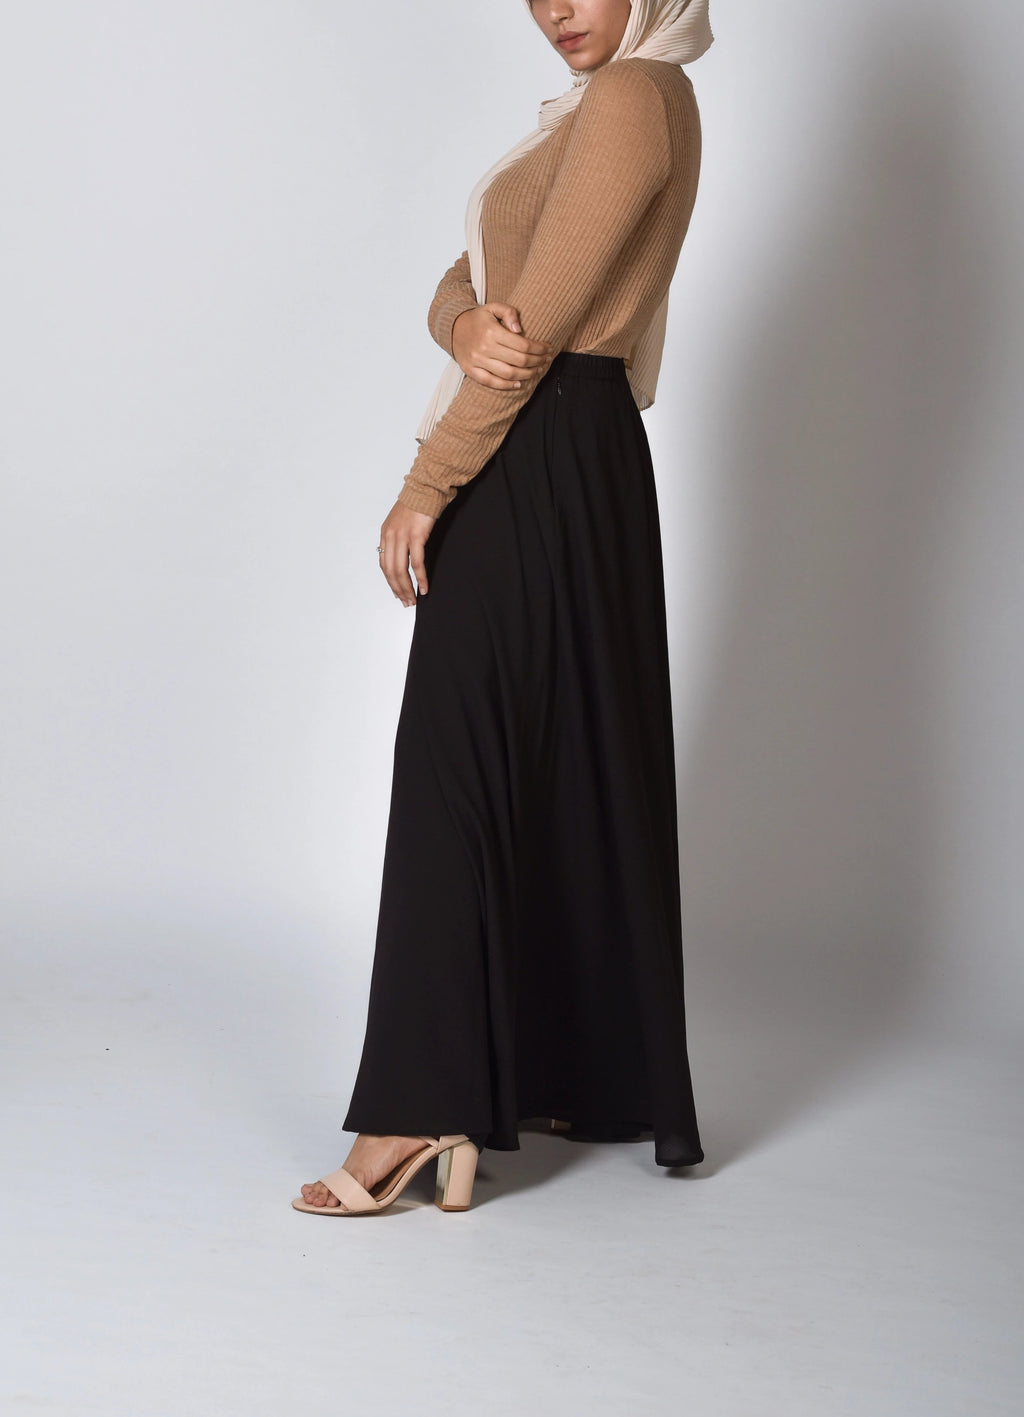 Cocoa SassQueen High Waist Skirt - Modest Essentials